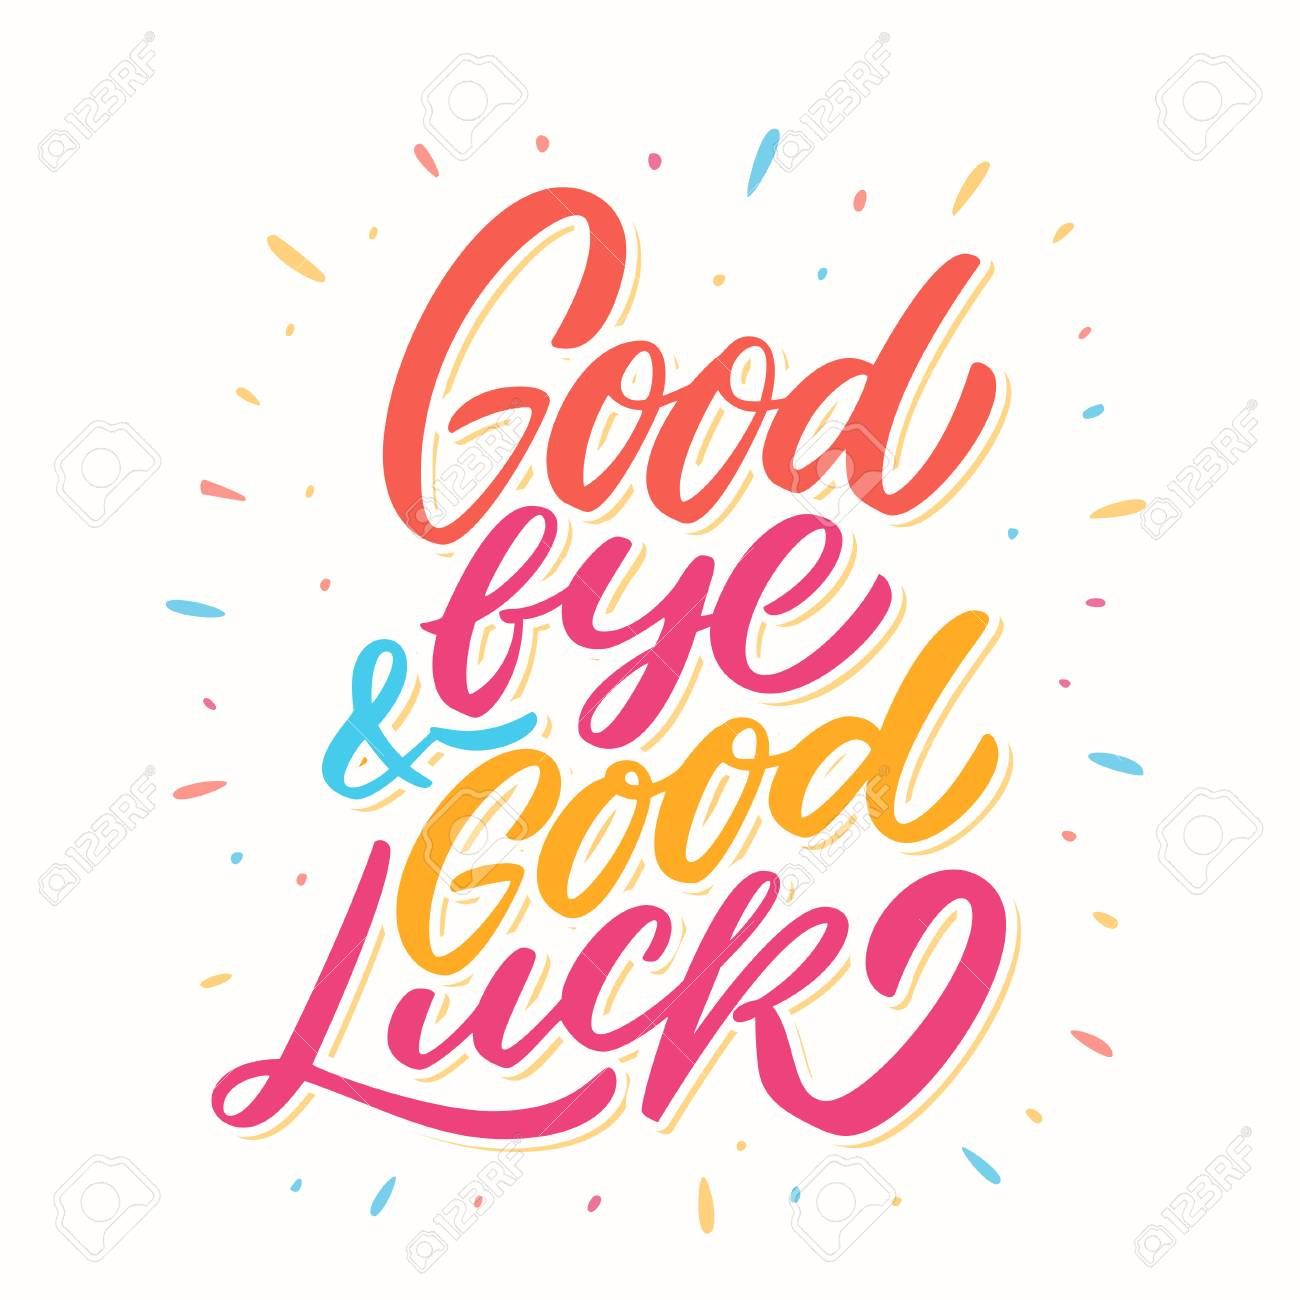 Goodbye And Good Luck Farewell Card Throughout Goodbye Card Template Professional Template Ideas Goodbye And Good Luck Farewell Cards Good Luck Cards